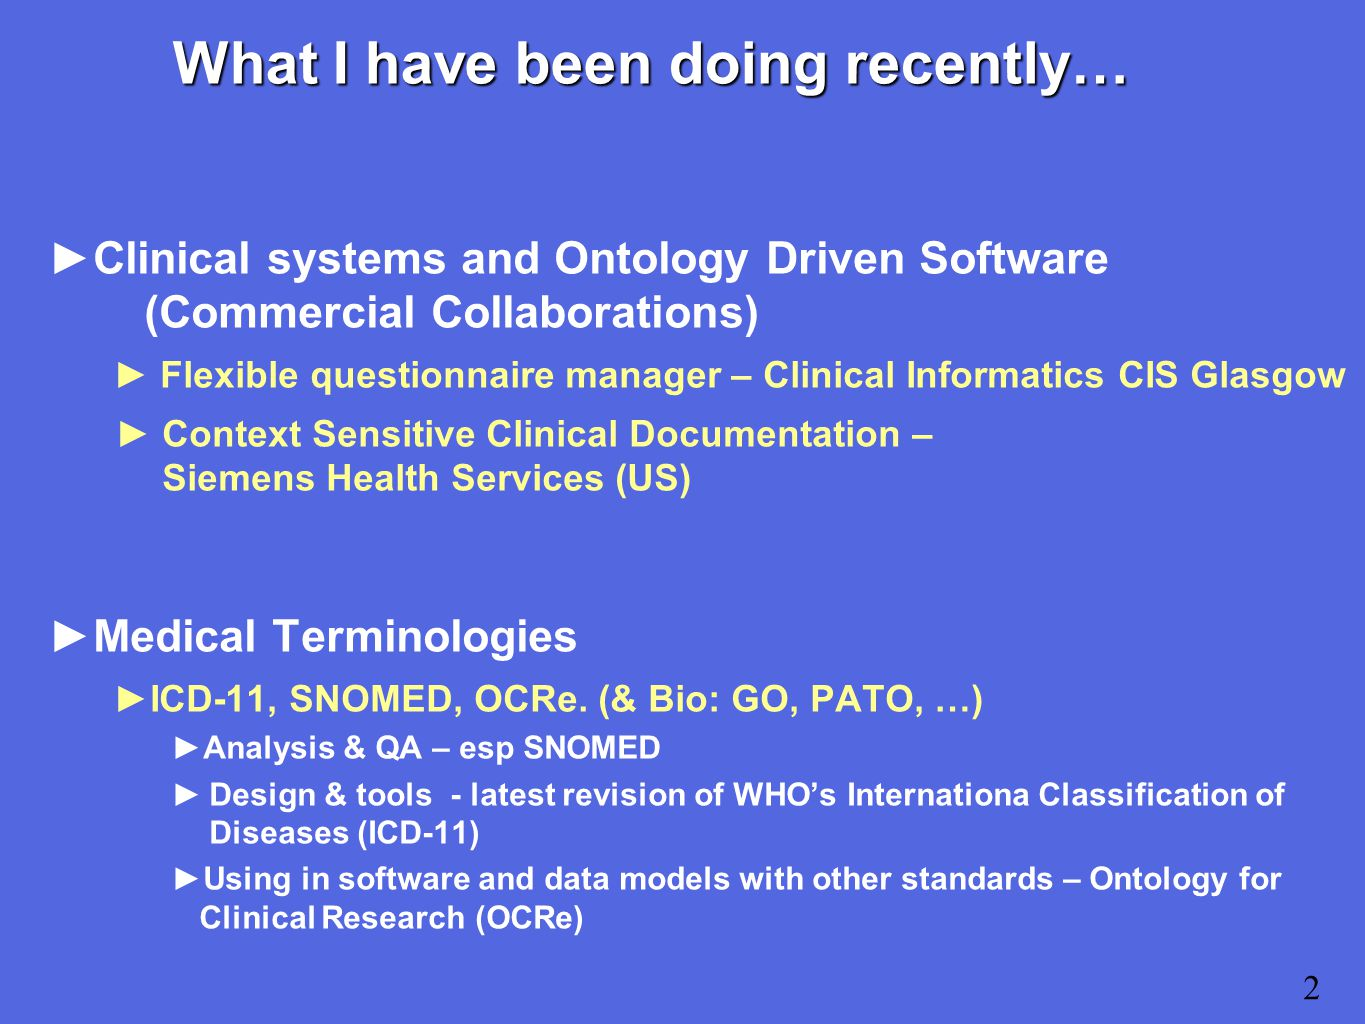 What I have been doing recently… ►Clinical systems and Ontology Driven Software (Commercial Collaborations) ► Flexible questionnaire manager – Clinical Informatics CIS Glasgow ►Context Sensitive Clinical Documentation – Siemens Health Services (US) ►Medical Terminologies ►ICD-11, SNOMED, OCRe.